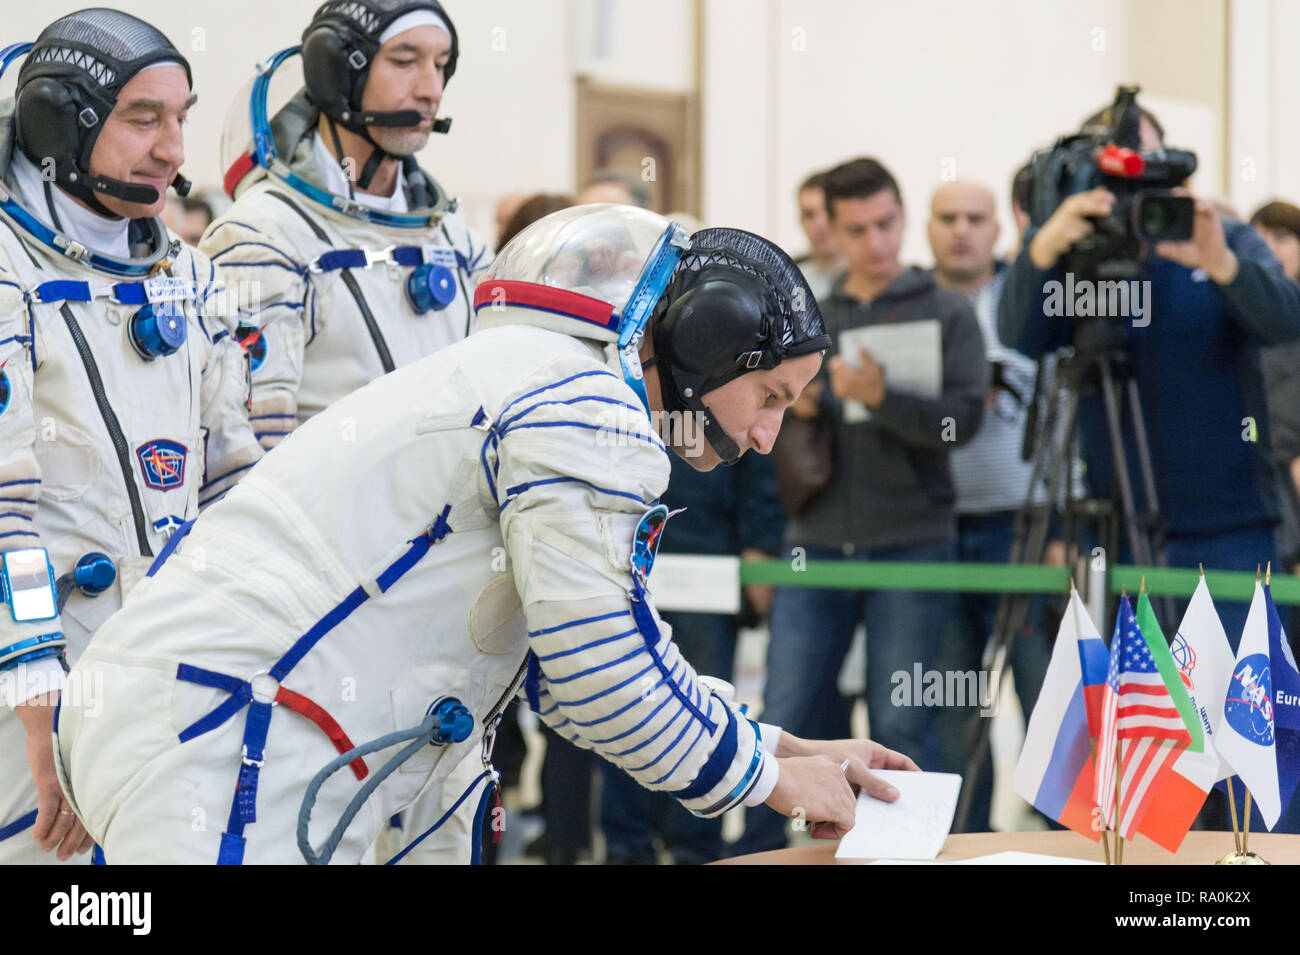 International Space Station Expedition 58 backup crew member Drew Morgan of NASA signs in for the final day of qualification exams at the Gagarin Cosmonaut Training Center November 13, 2018 in Star City, Russia. The three are scheduled to launch December 3rd from the Baikonur Cosmodrome in Kazakhstan for a six-and-a-half month mission on the International Space Station. - Stock Image